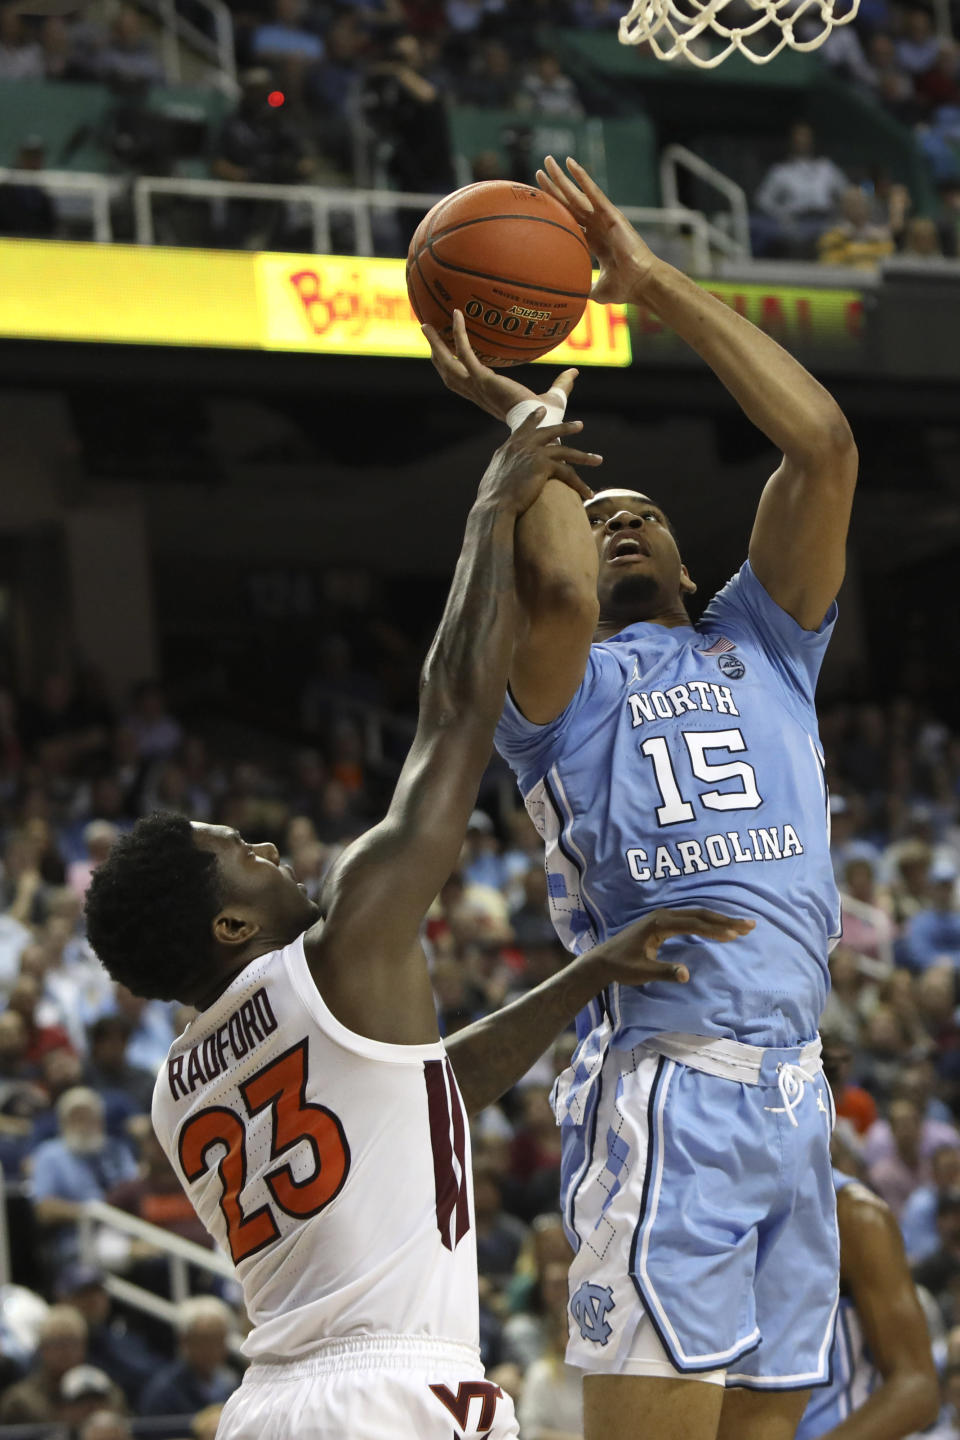 Virginia Tech guard Tyrece Radford (23) defends while North Carolina forward Garrison Brooks (15) shoots during the first half of an NCAA college basketball game at the Atlantic Coast Conference tournament in Greensboro, N.C., Tuesday, March 10, 2020. (AP Photo/Ben McKeown)